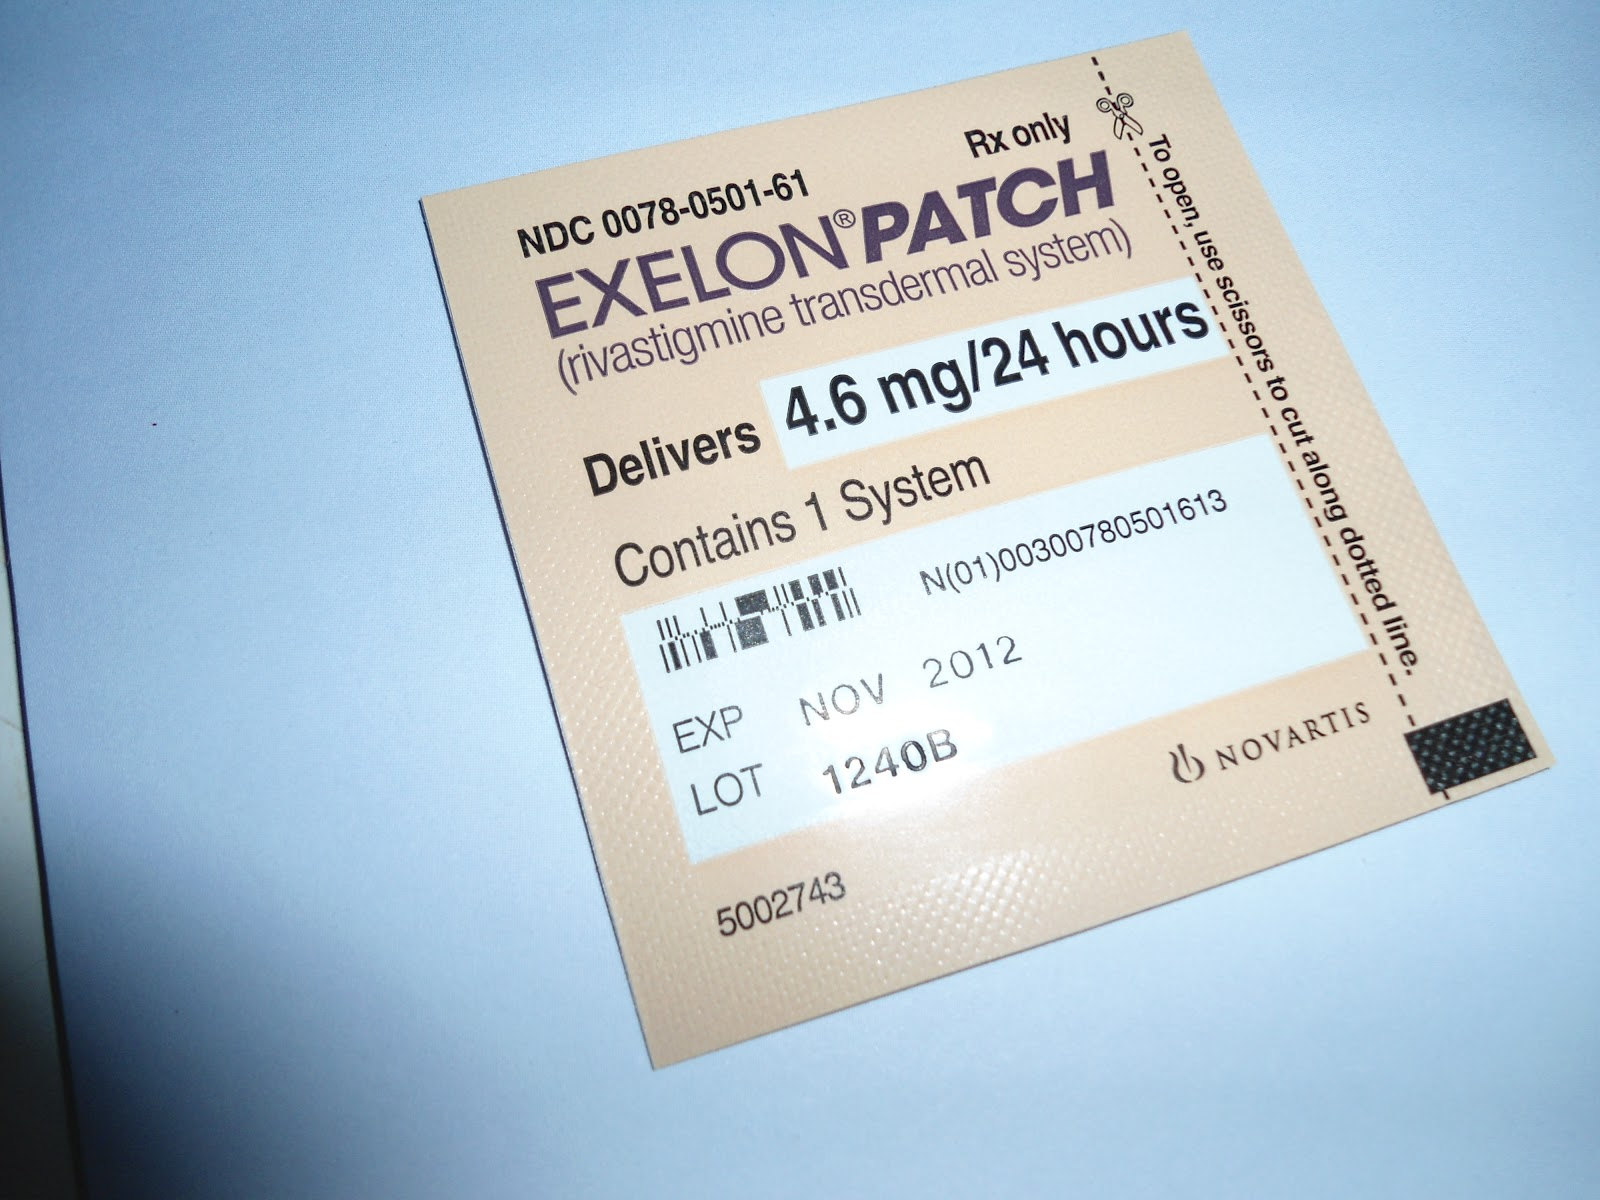 Exelon patch 4.6 mg